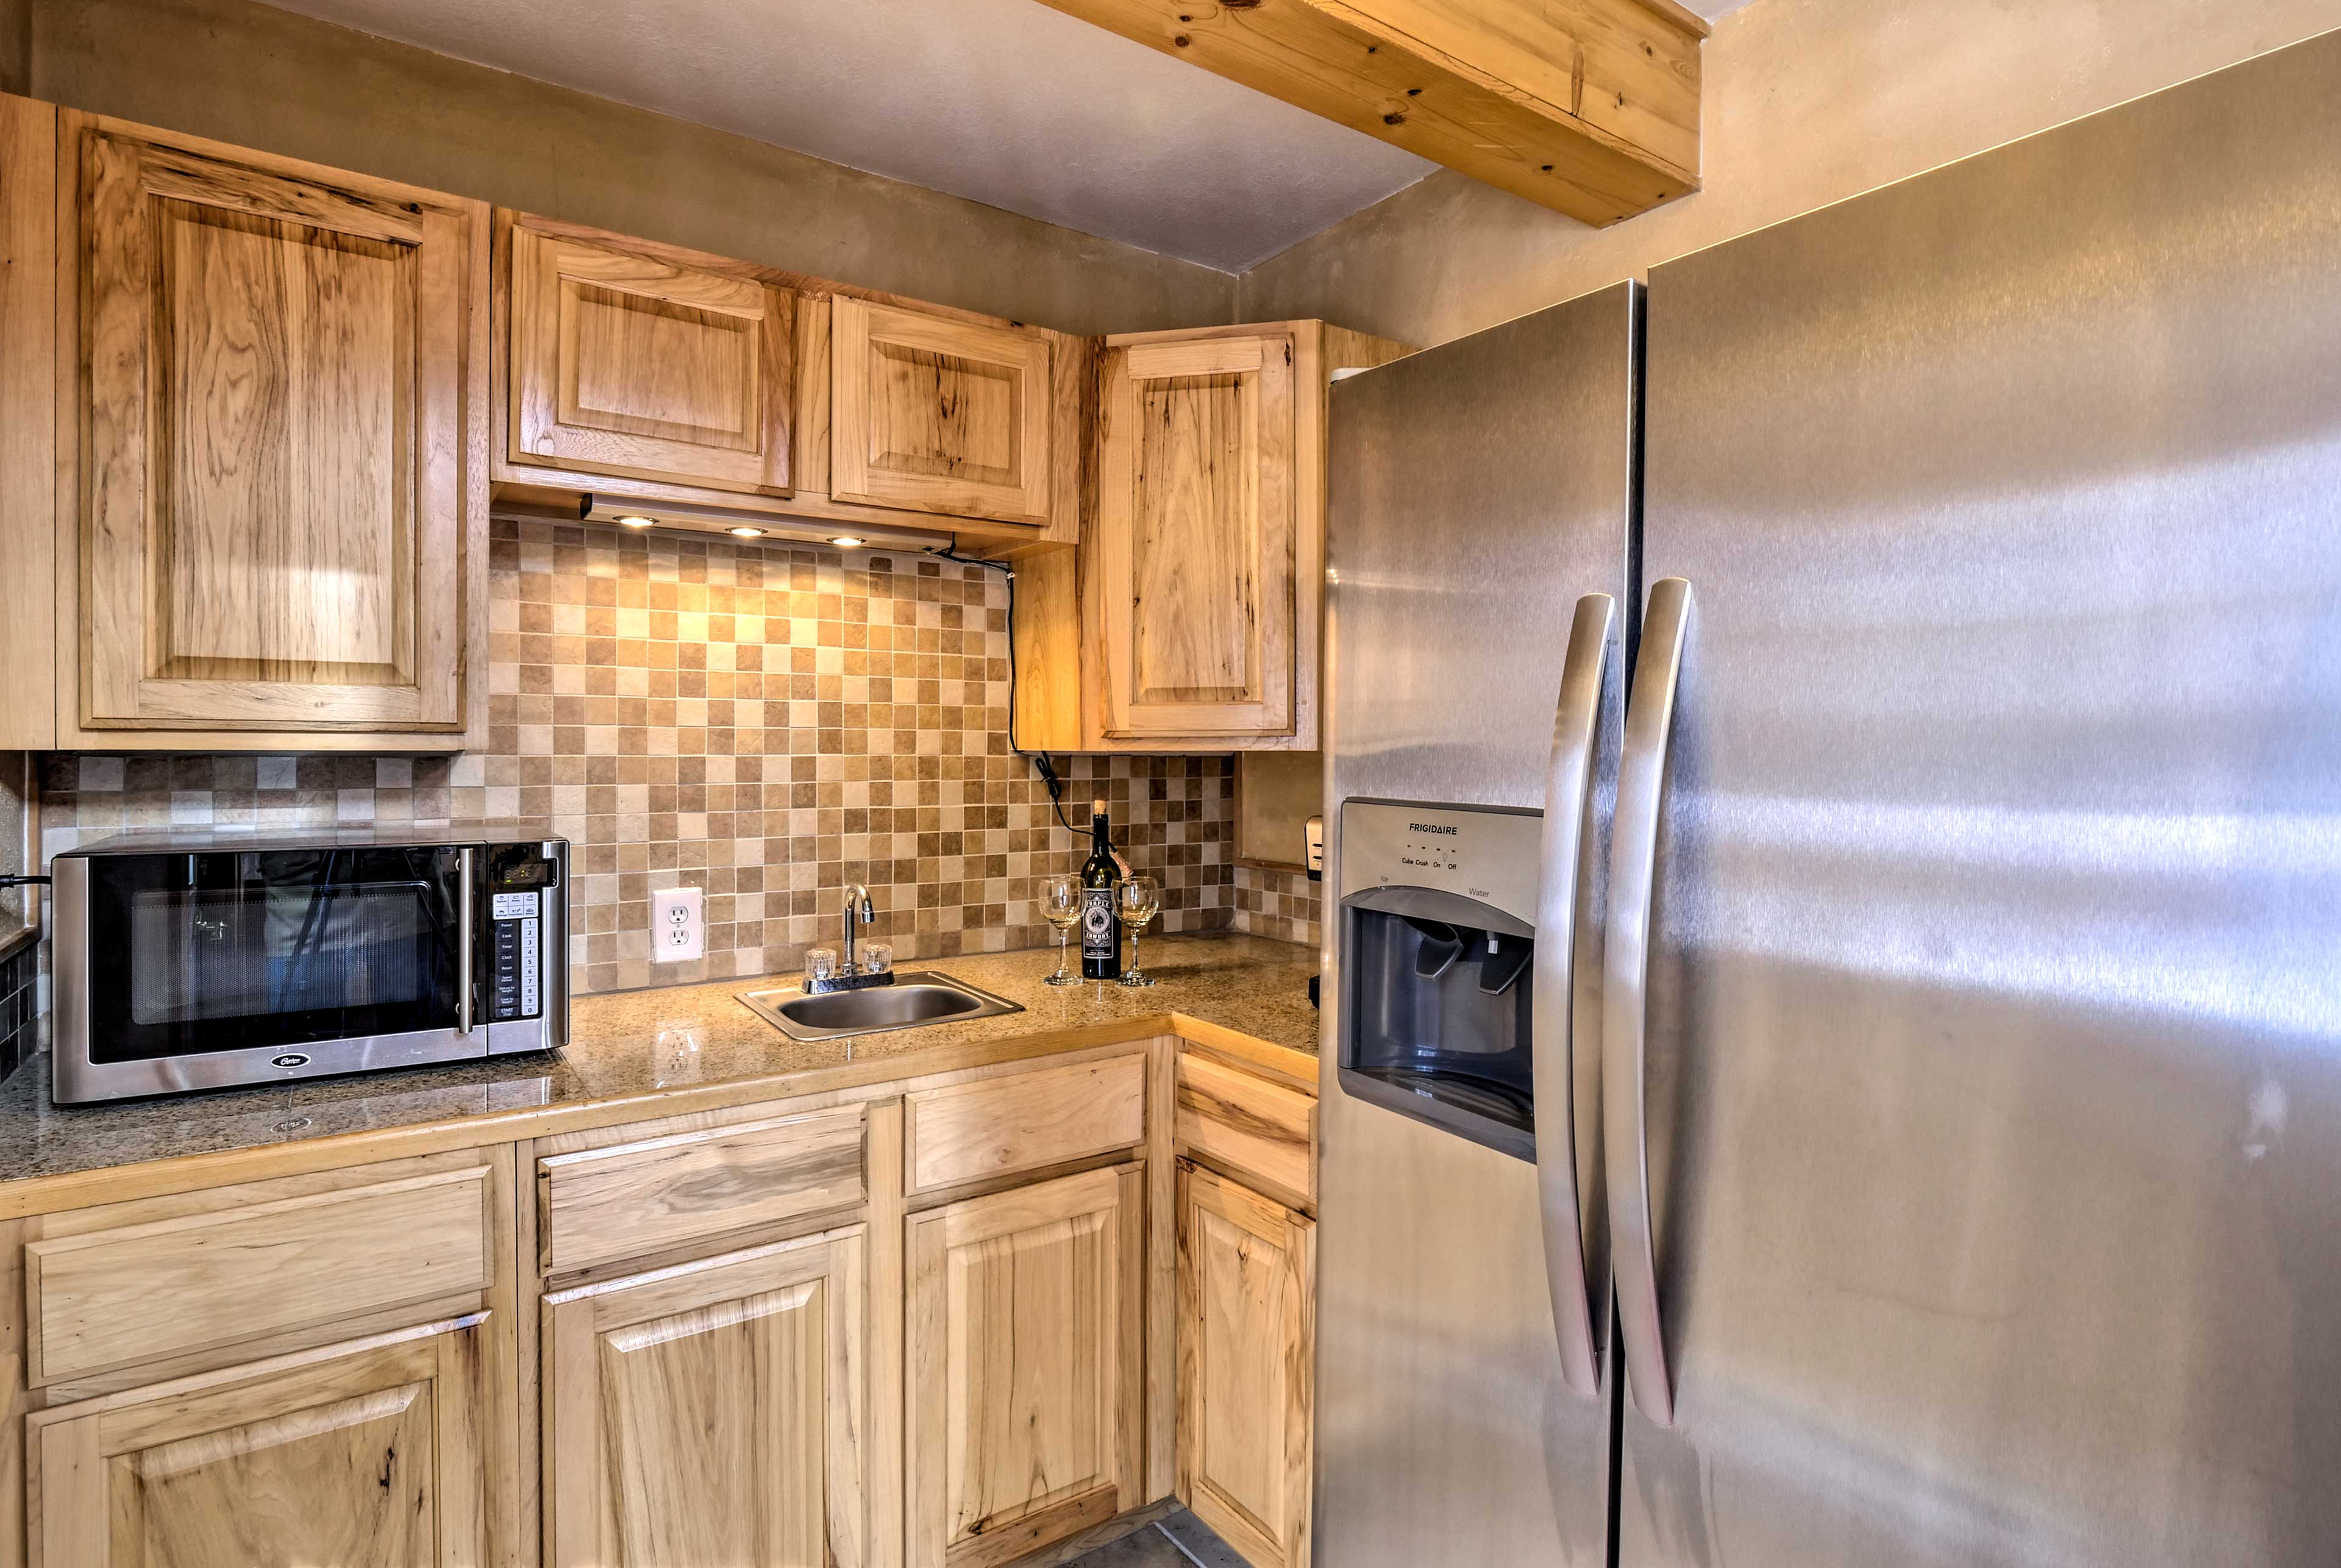 The full kitchen includes stainless steel appliances.